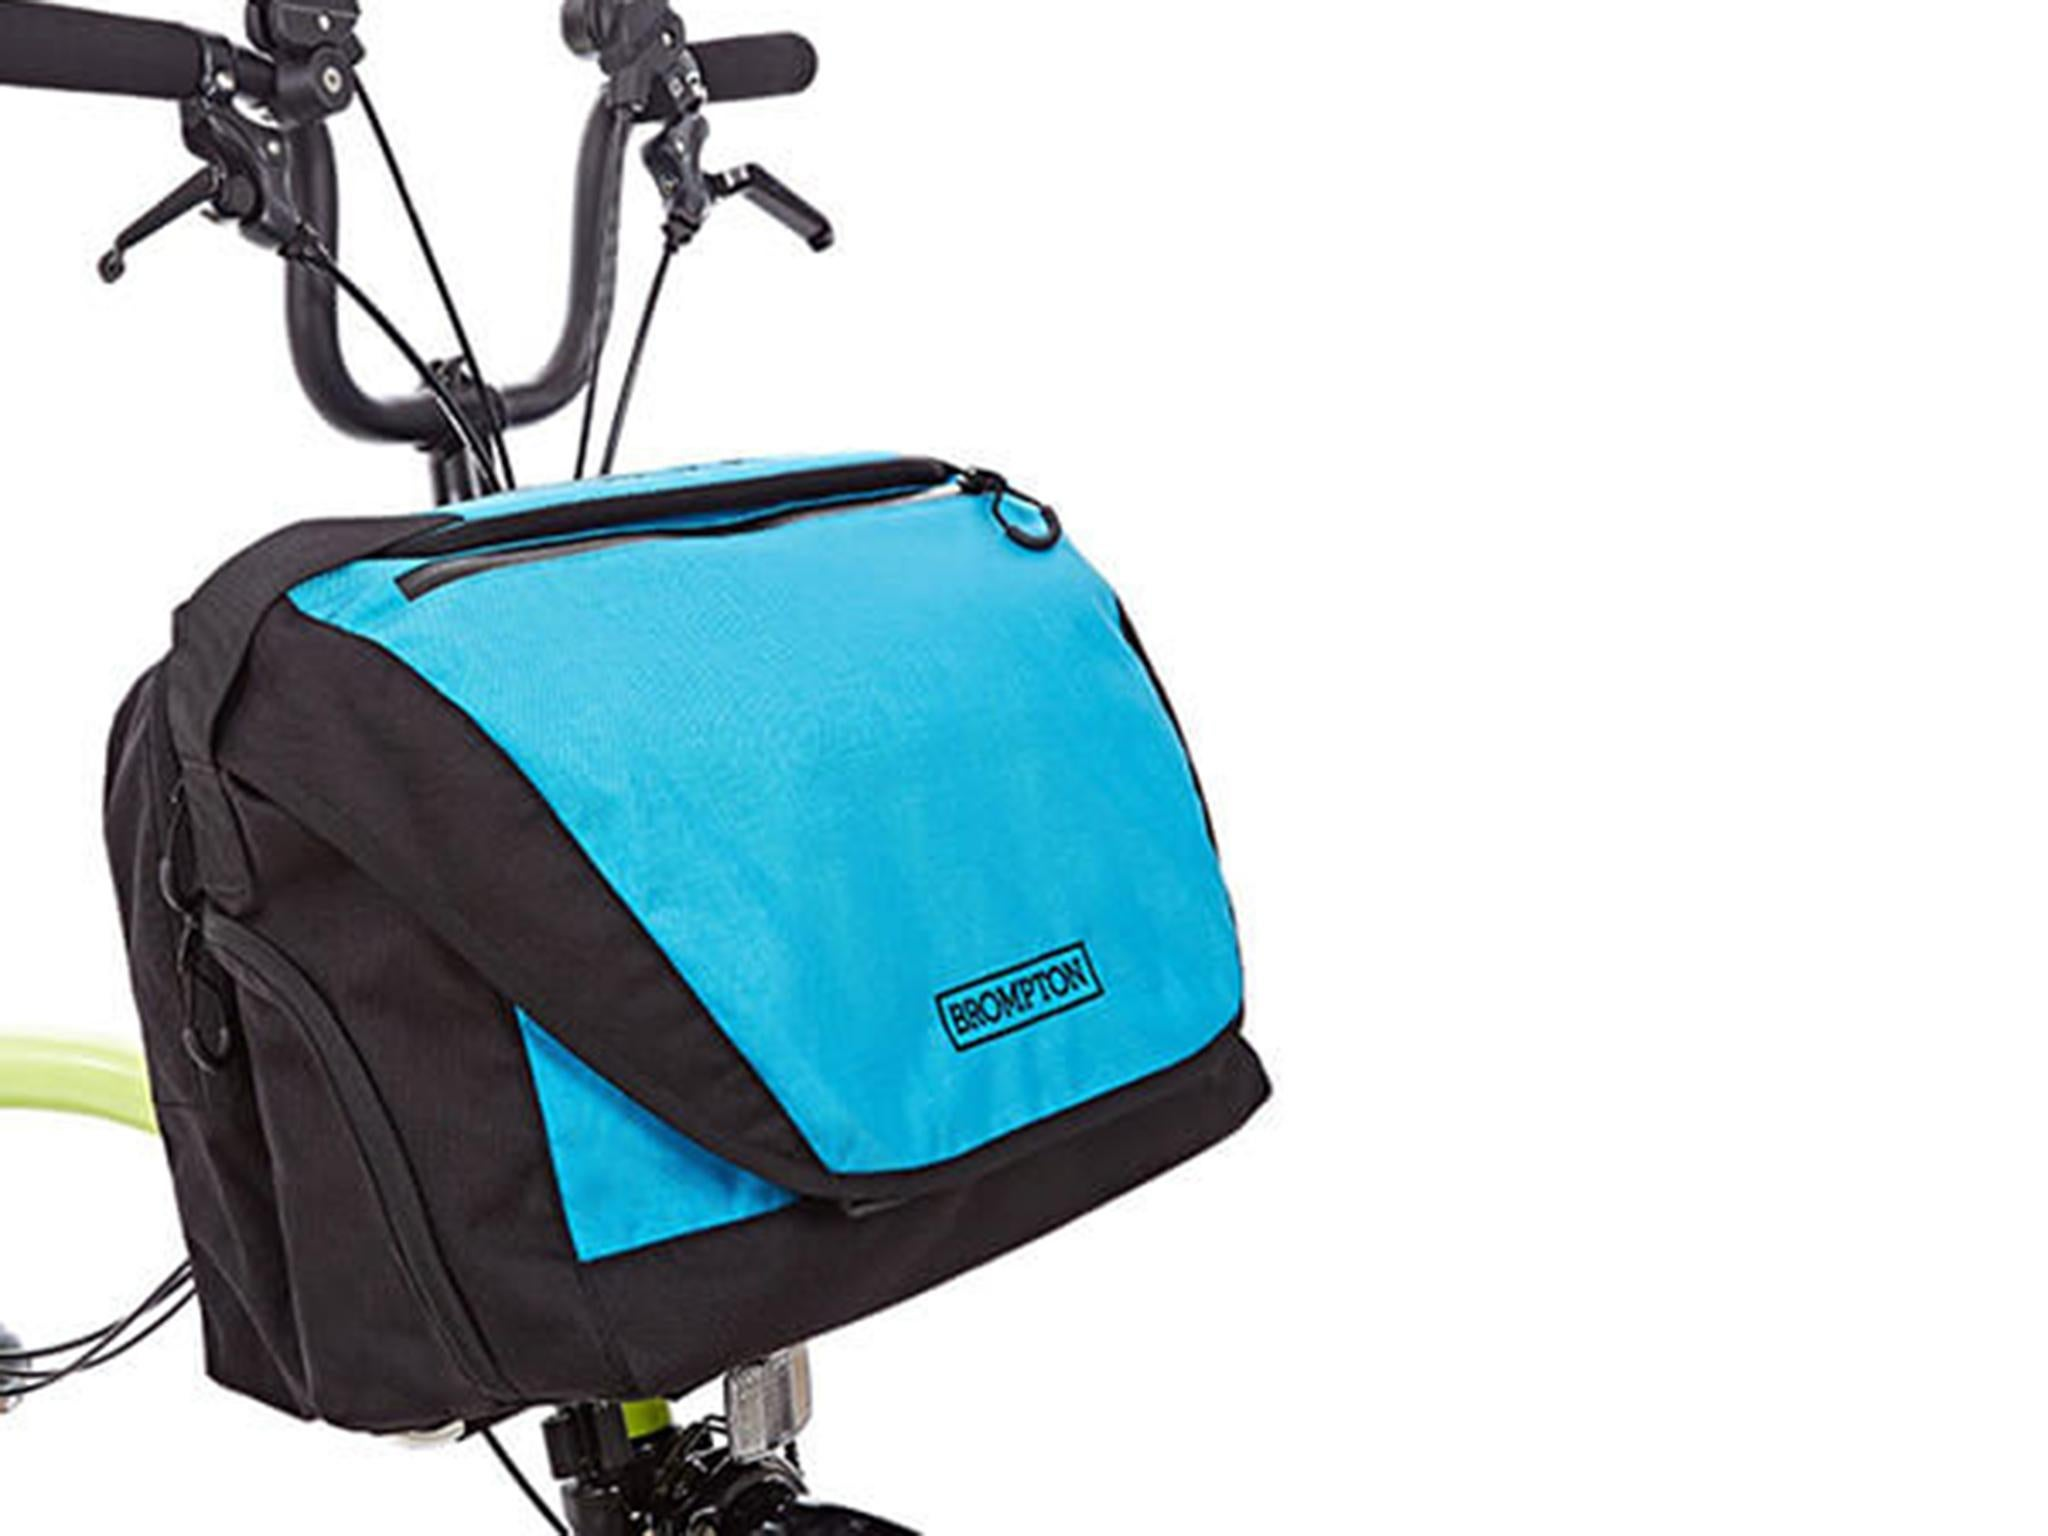 10 best cycling bags | The Independent